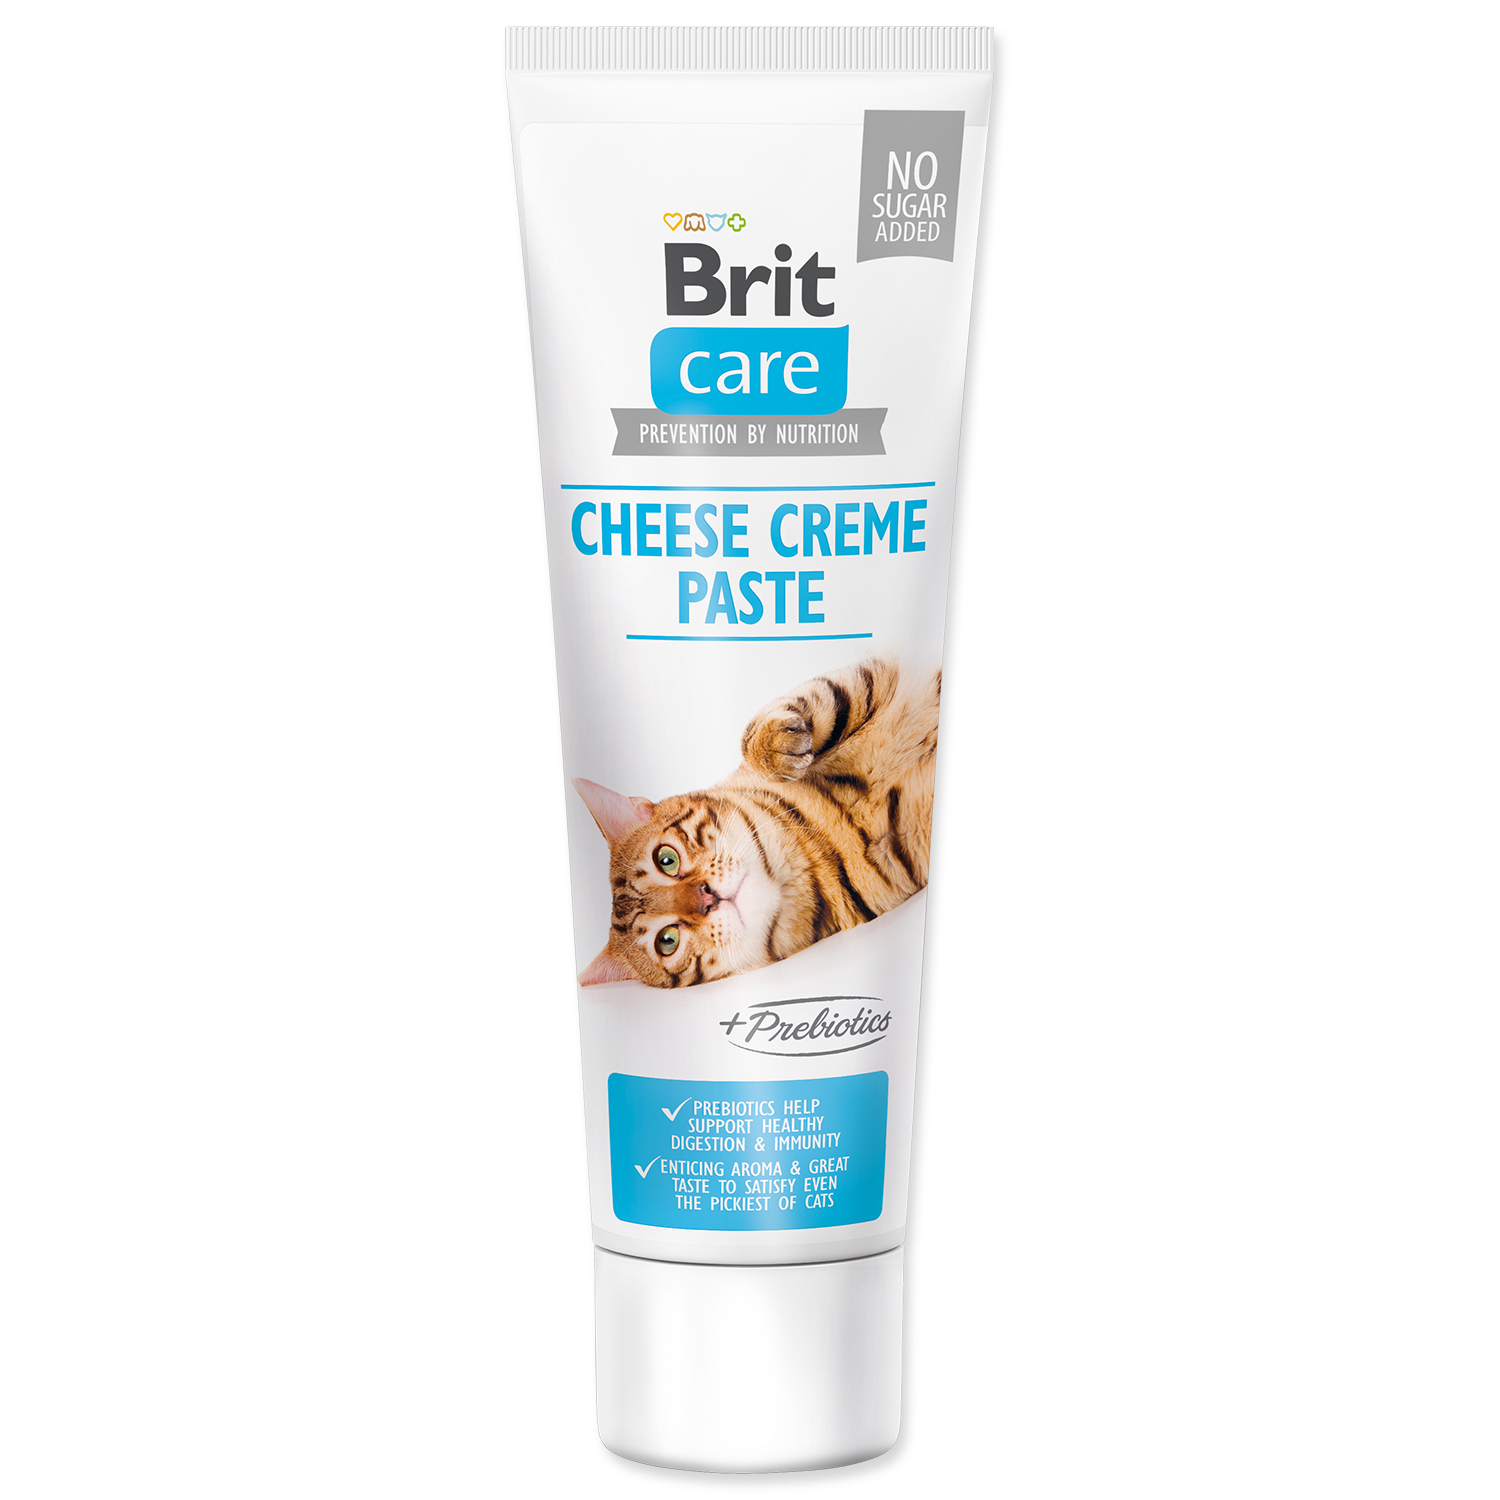 BRIT Care Cat Paste Cheese Creme enriched with Prebiotics 100g